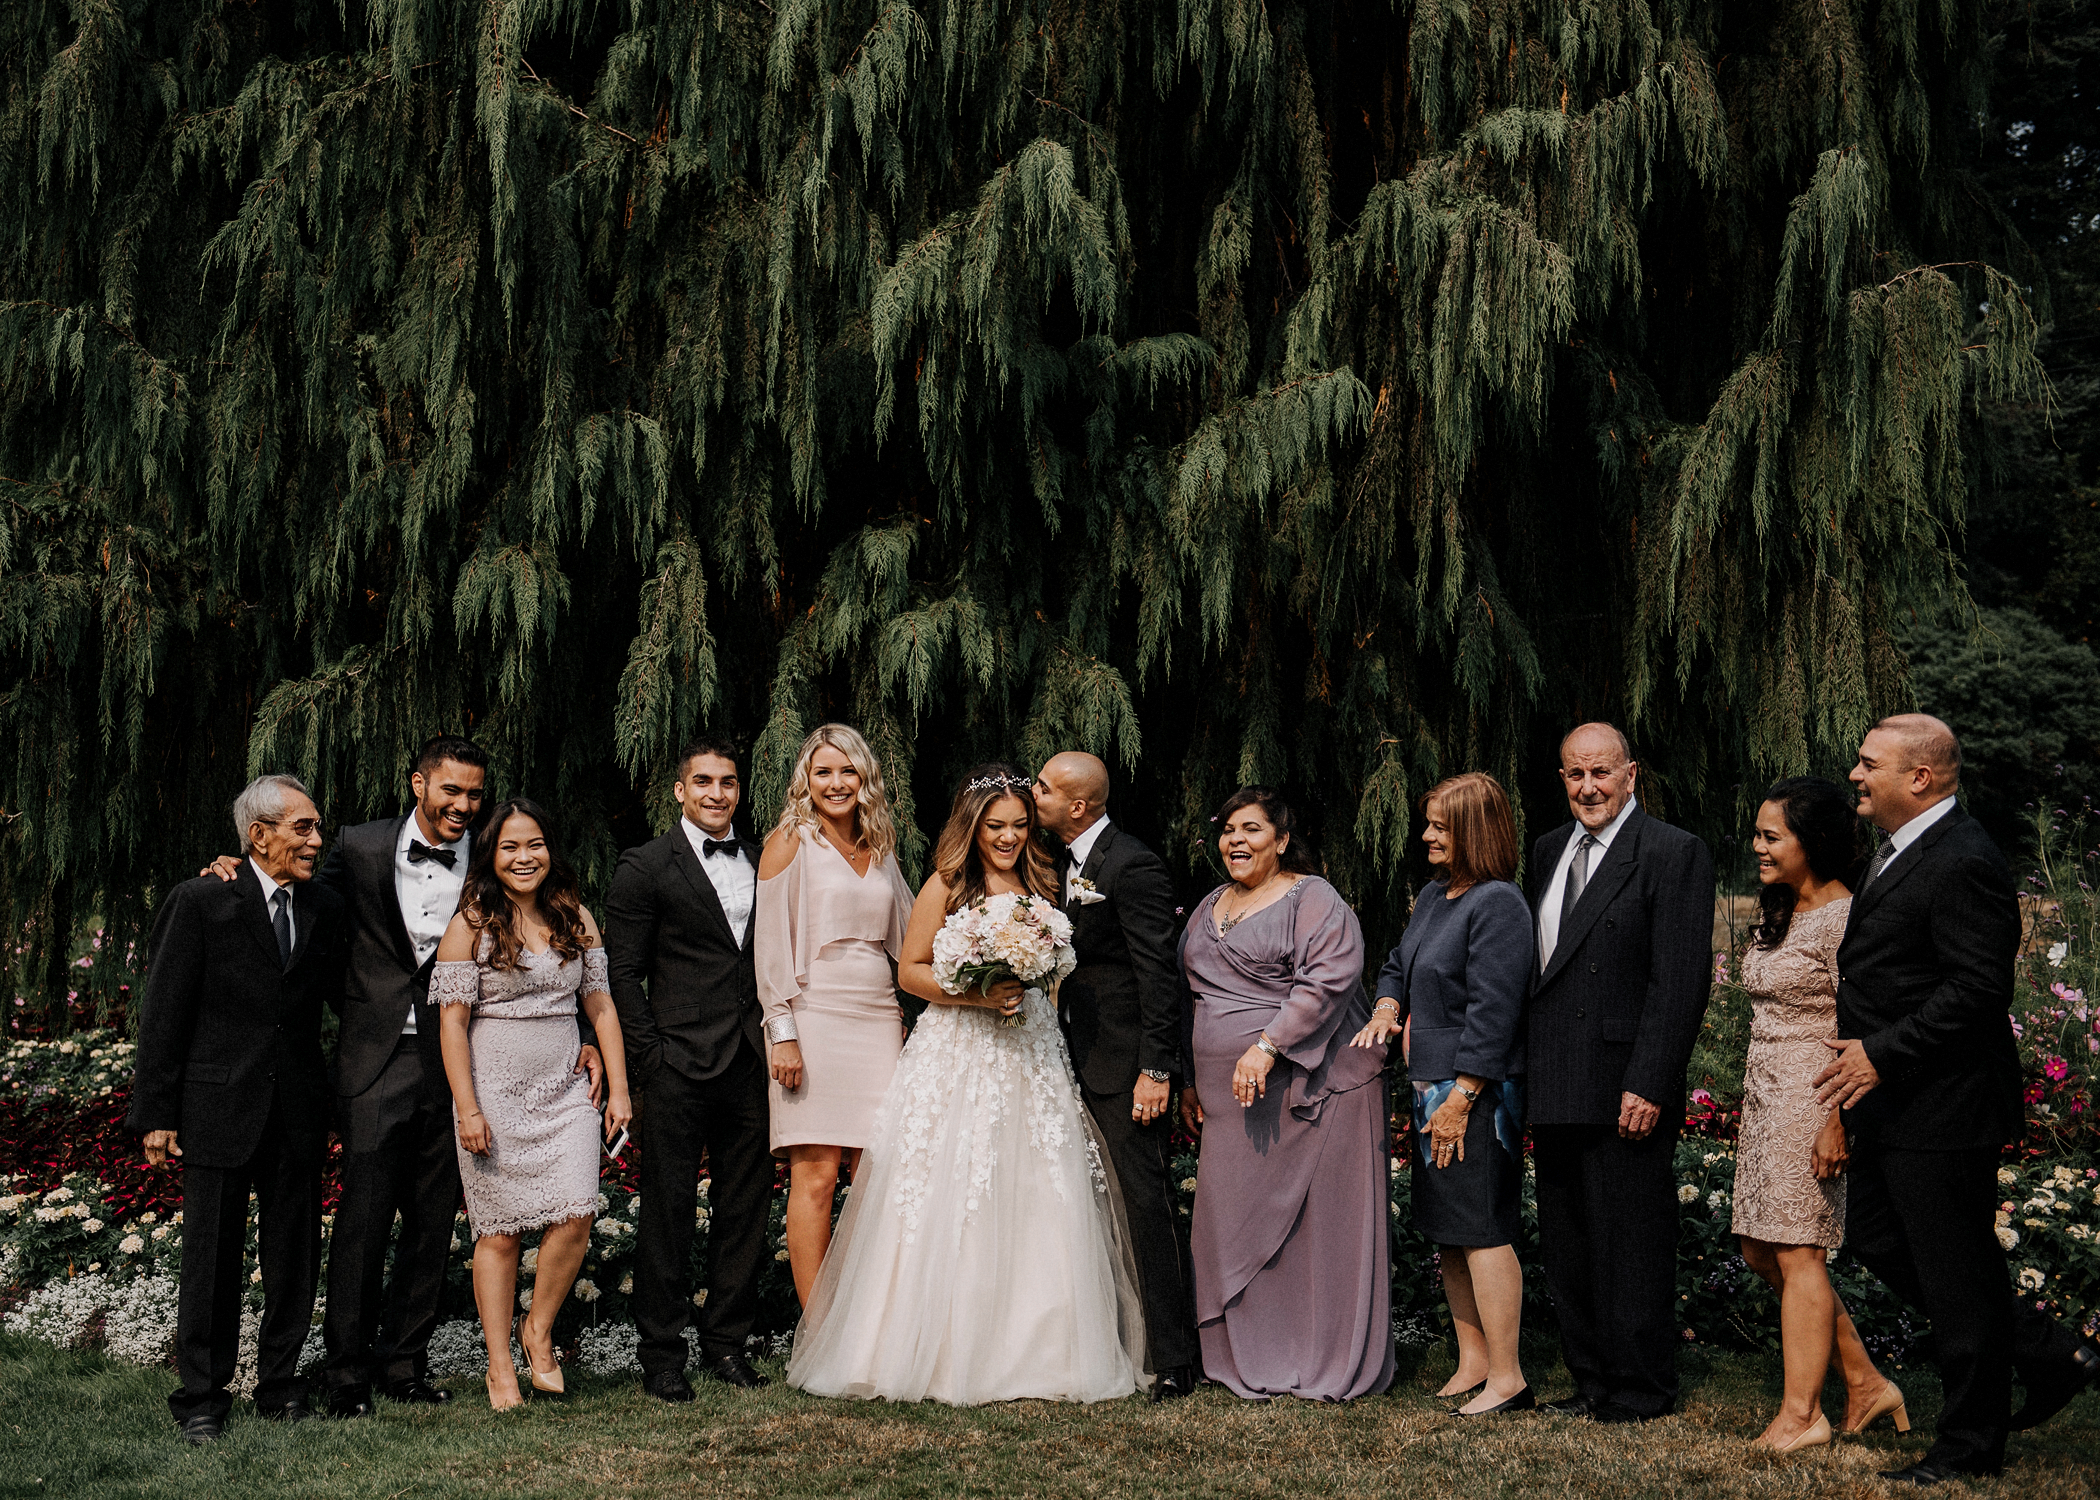 017-kaoverii-silva-LM-wedding-vancouver-photography-elopement-blog.png